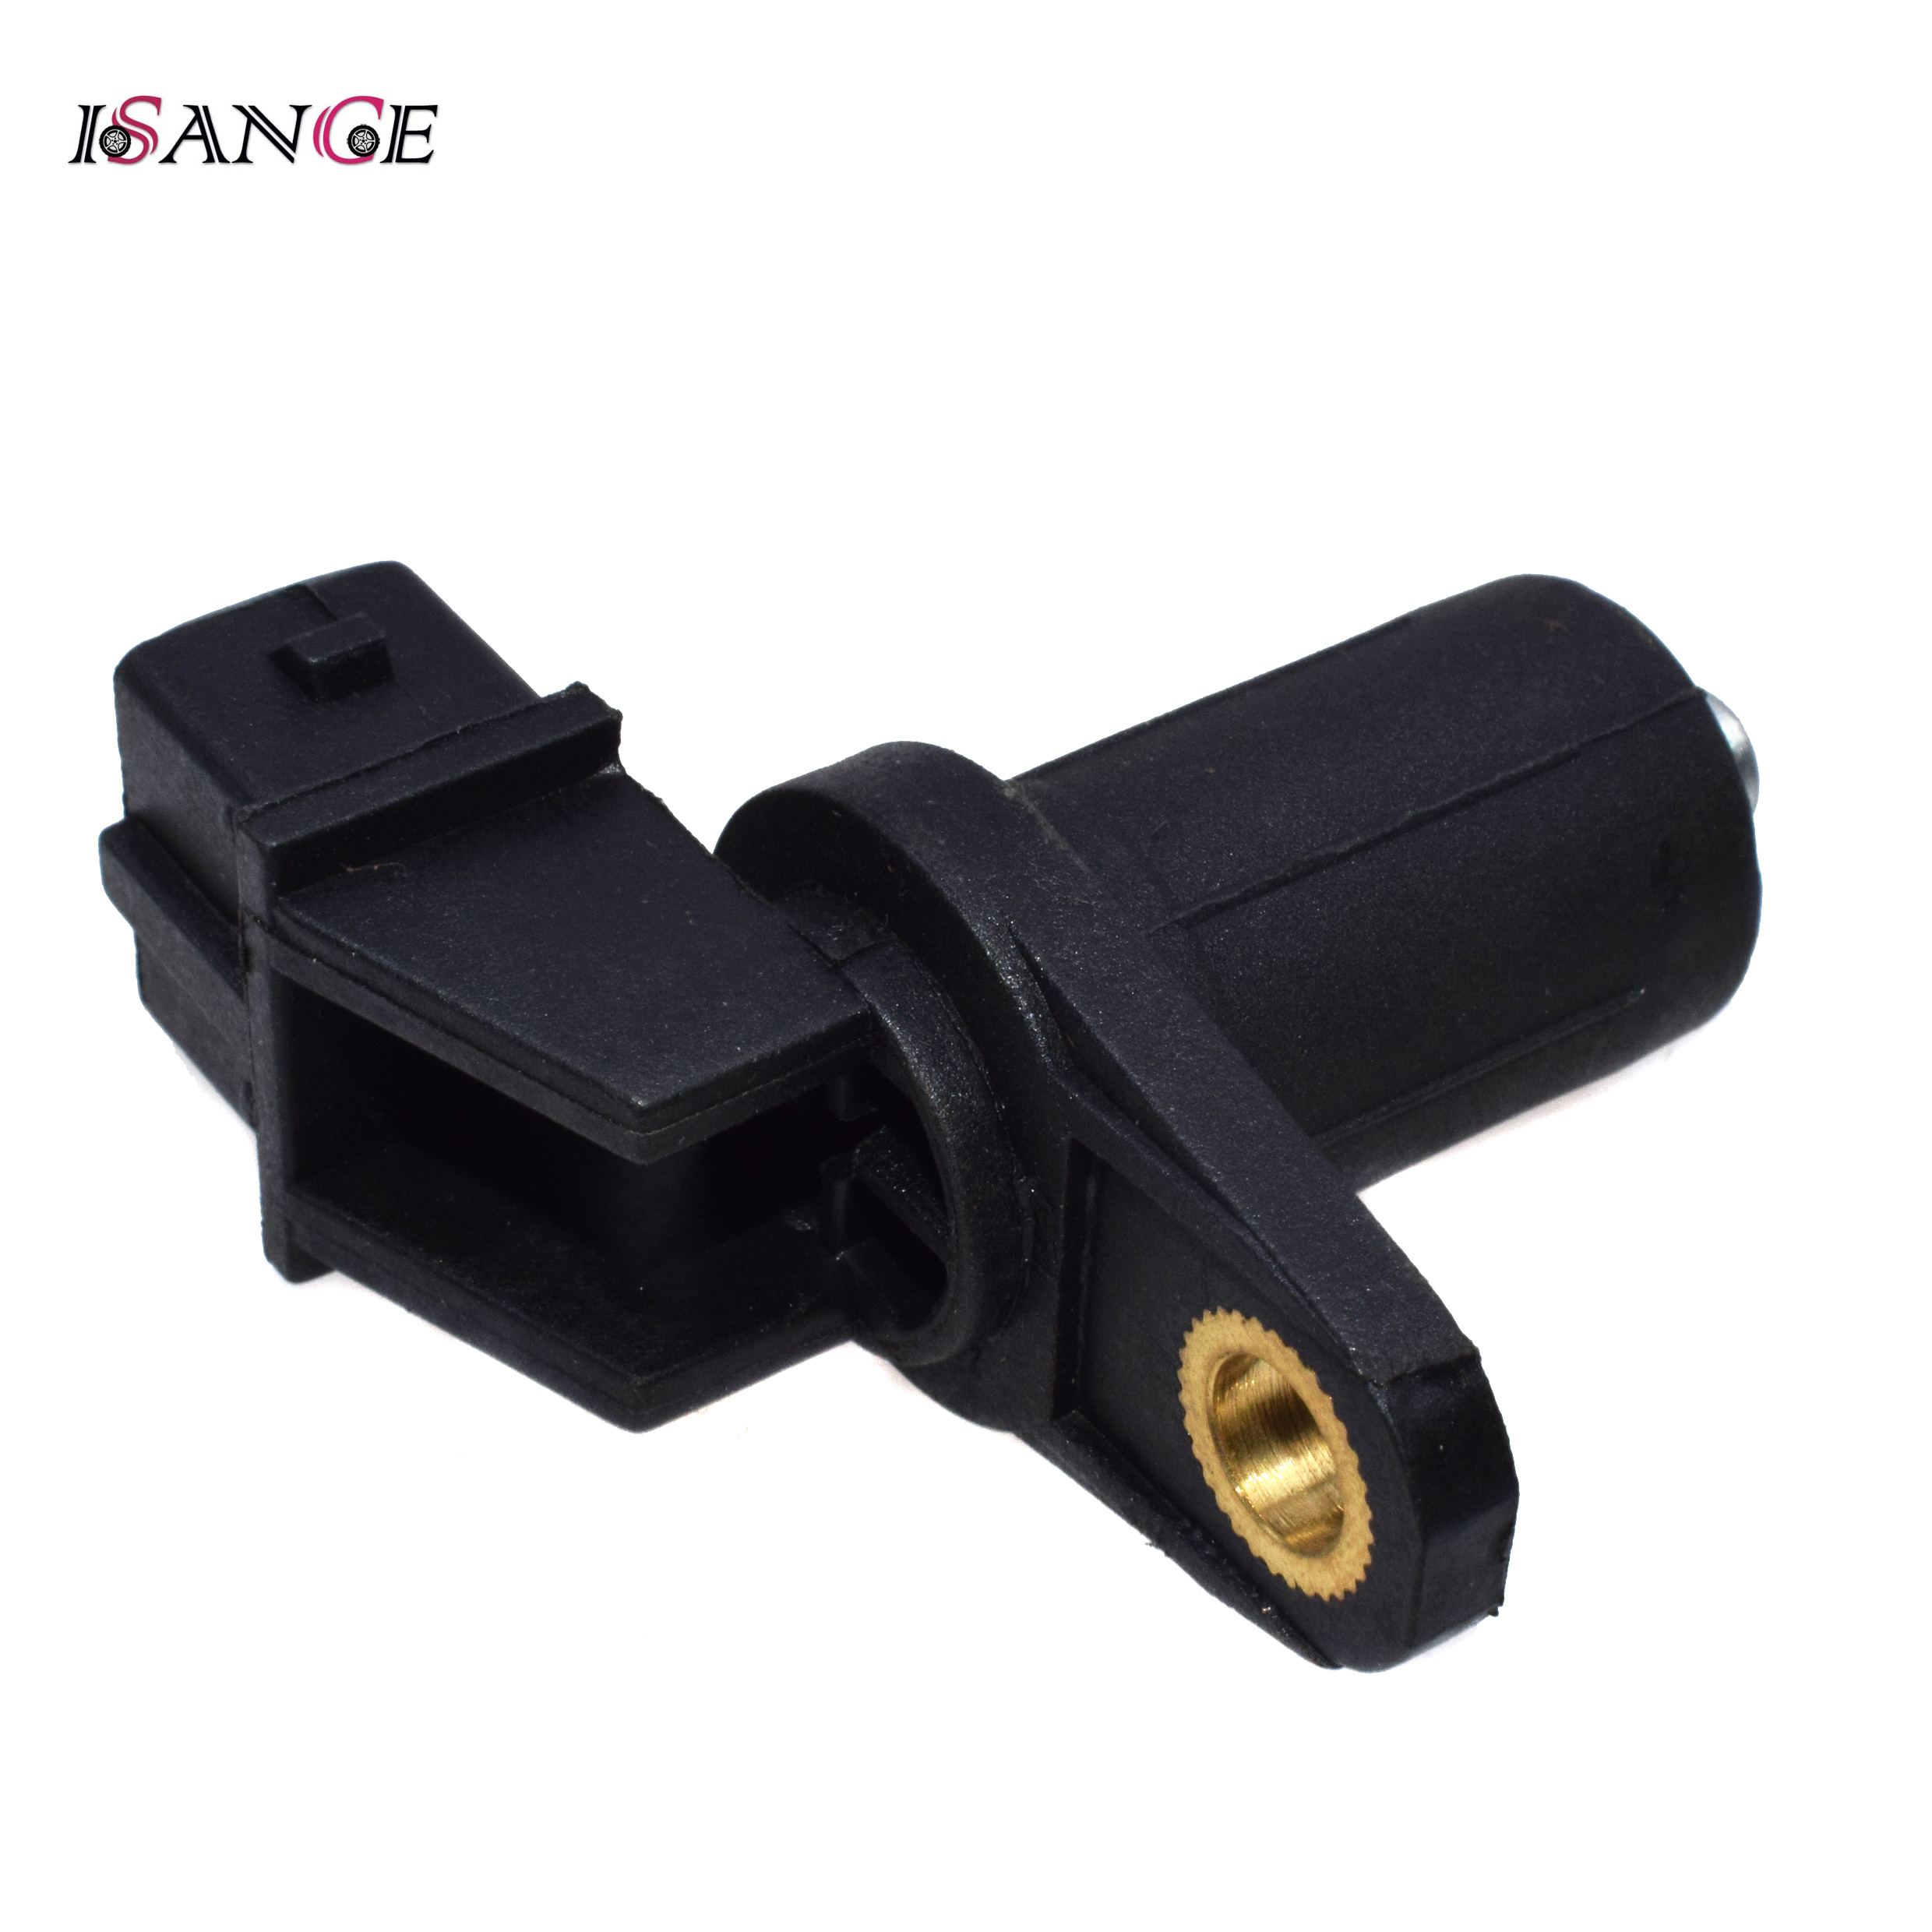 OEM# 12141742629 13627839138 New OEM Replacement Crankshaft Position Sensor